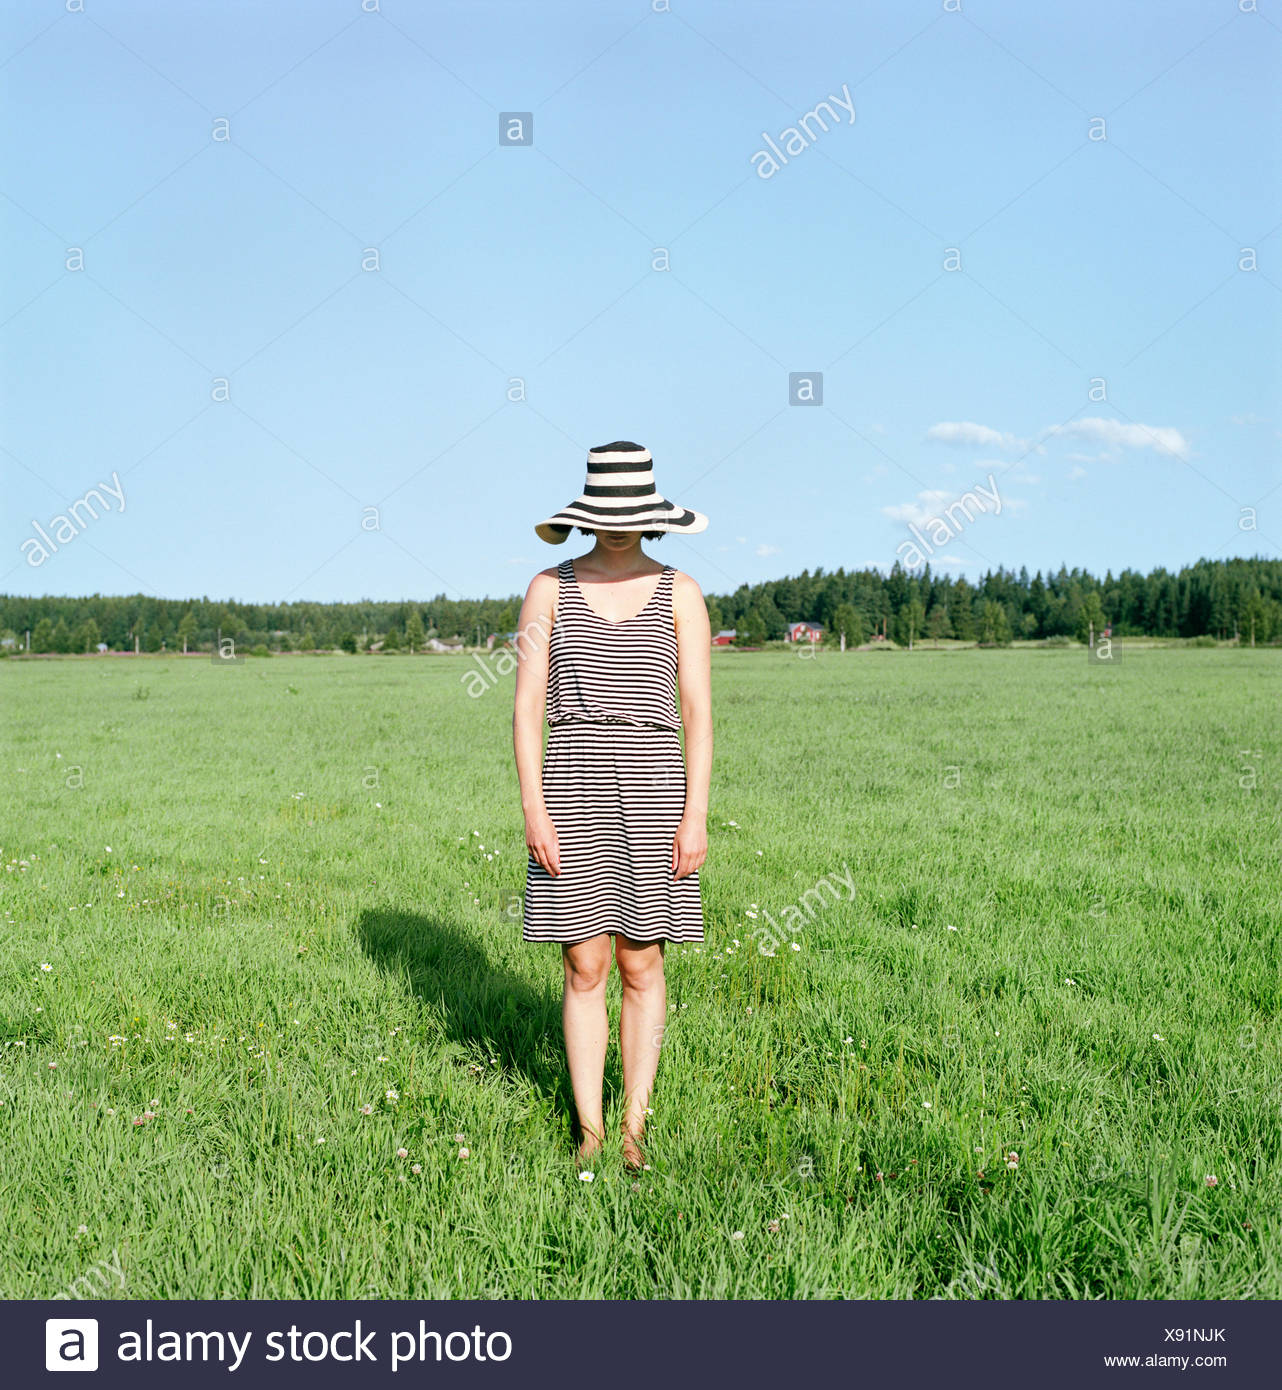 La Finlande, Uusimaa, Lapinjarvi, young woman wearing hat standing on grass Photo Stock